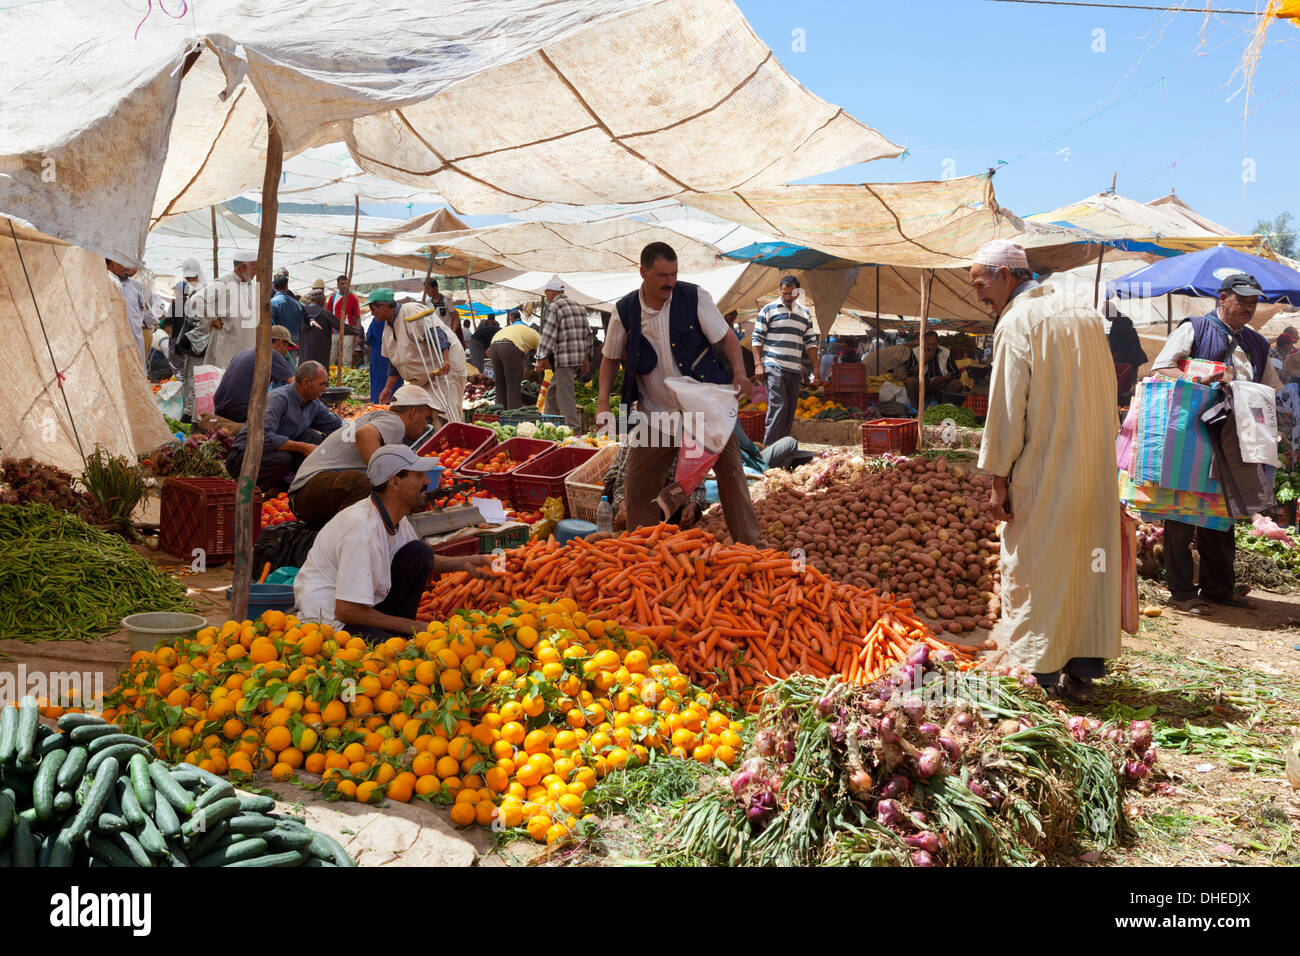 Monday Berber market, Tnine Ourika, Ourika Valley, Atlas Mountains, Morocco, North Africa, Africa - Stock Image